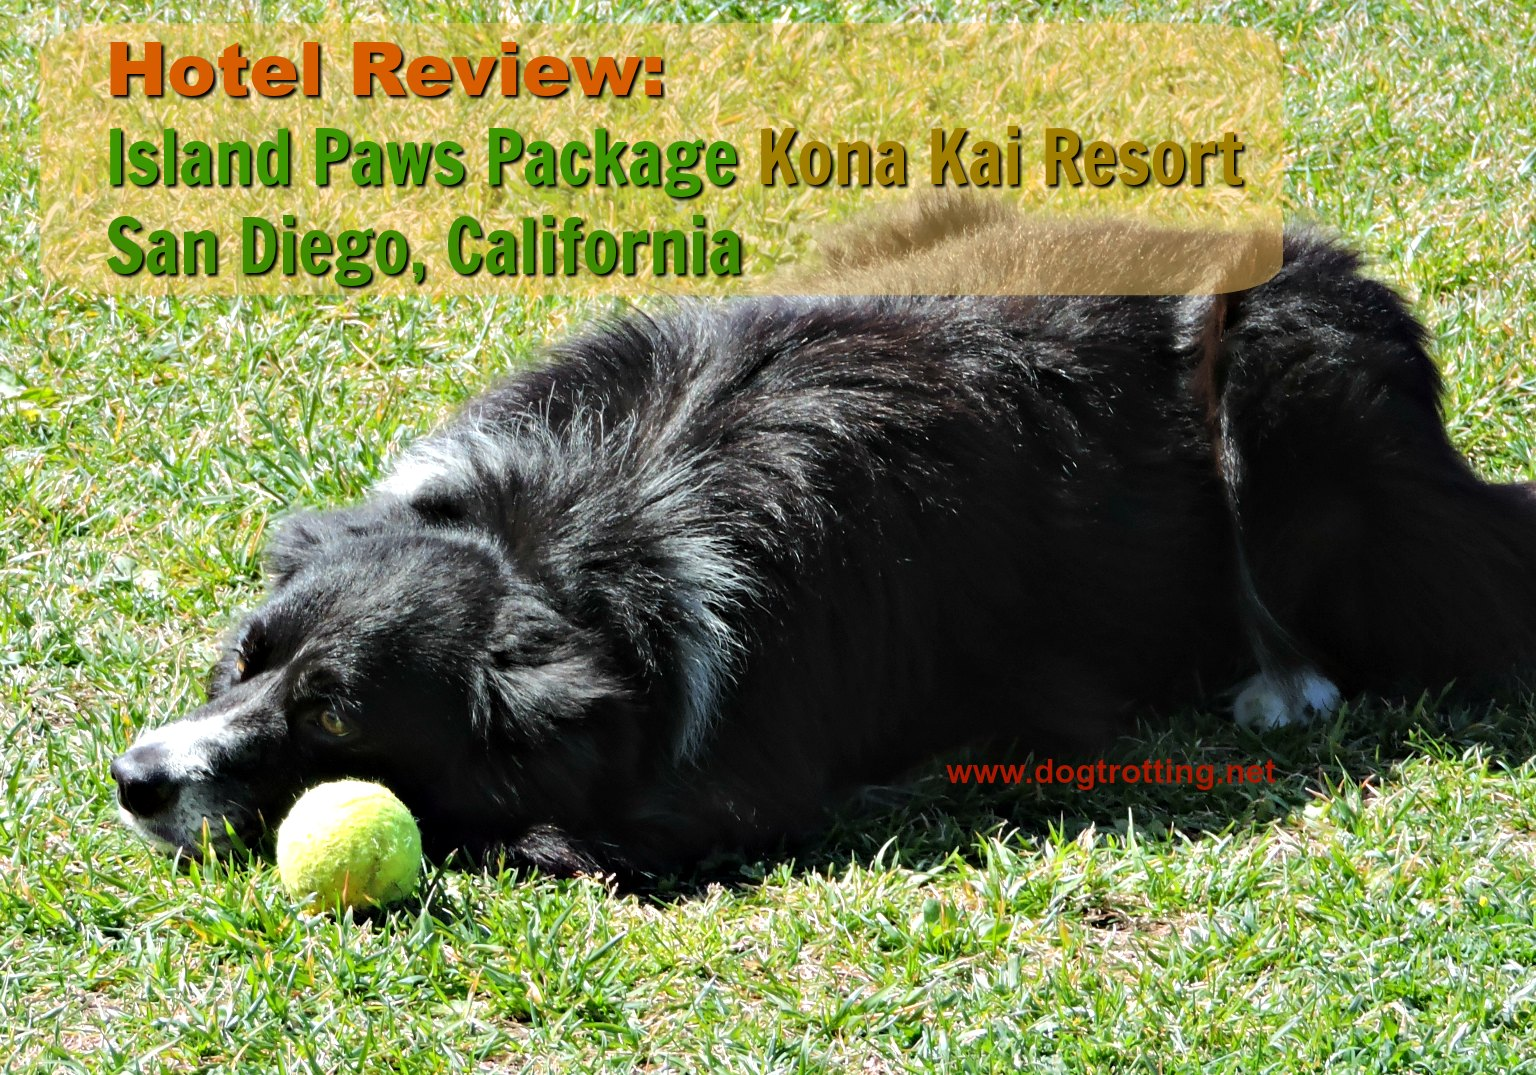 black dog with ball - Kona Kai dog-friendly resort review